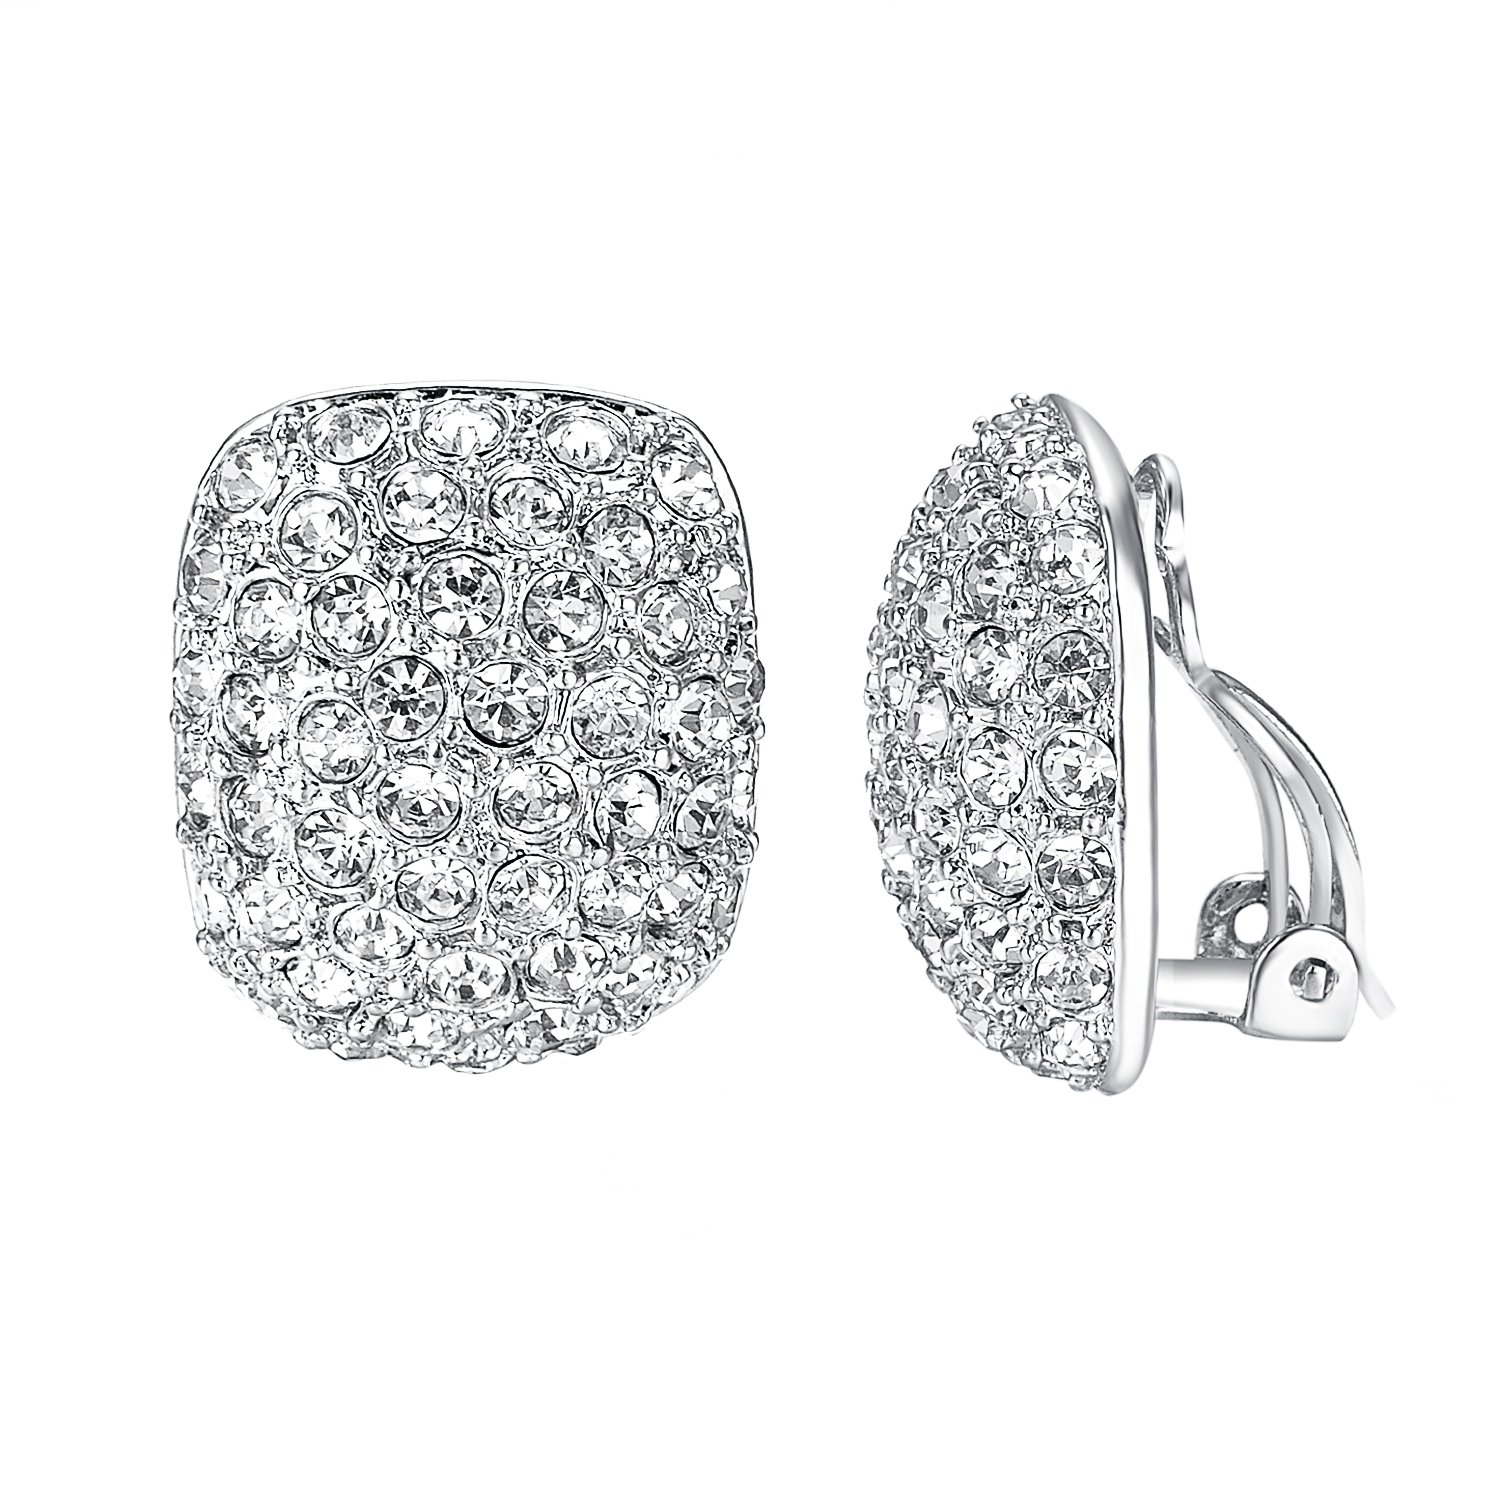 Yoursfs Clip Earrings For Women With Round Austrian Crystals Non Pierced Ears Clip-On Earrings (Big Clip Earrings)